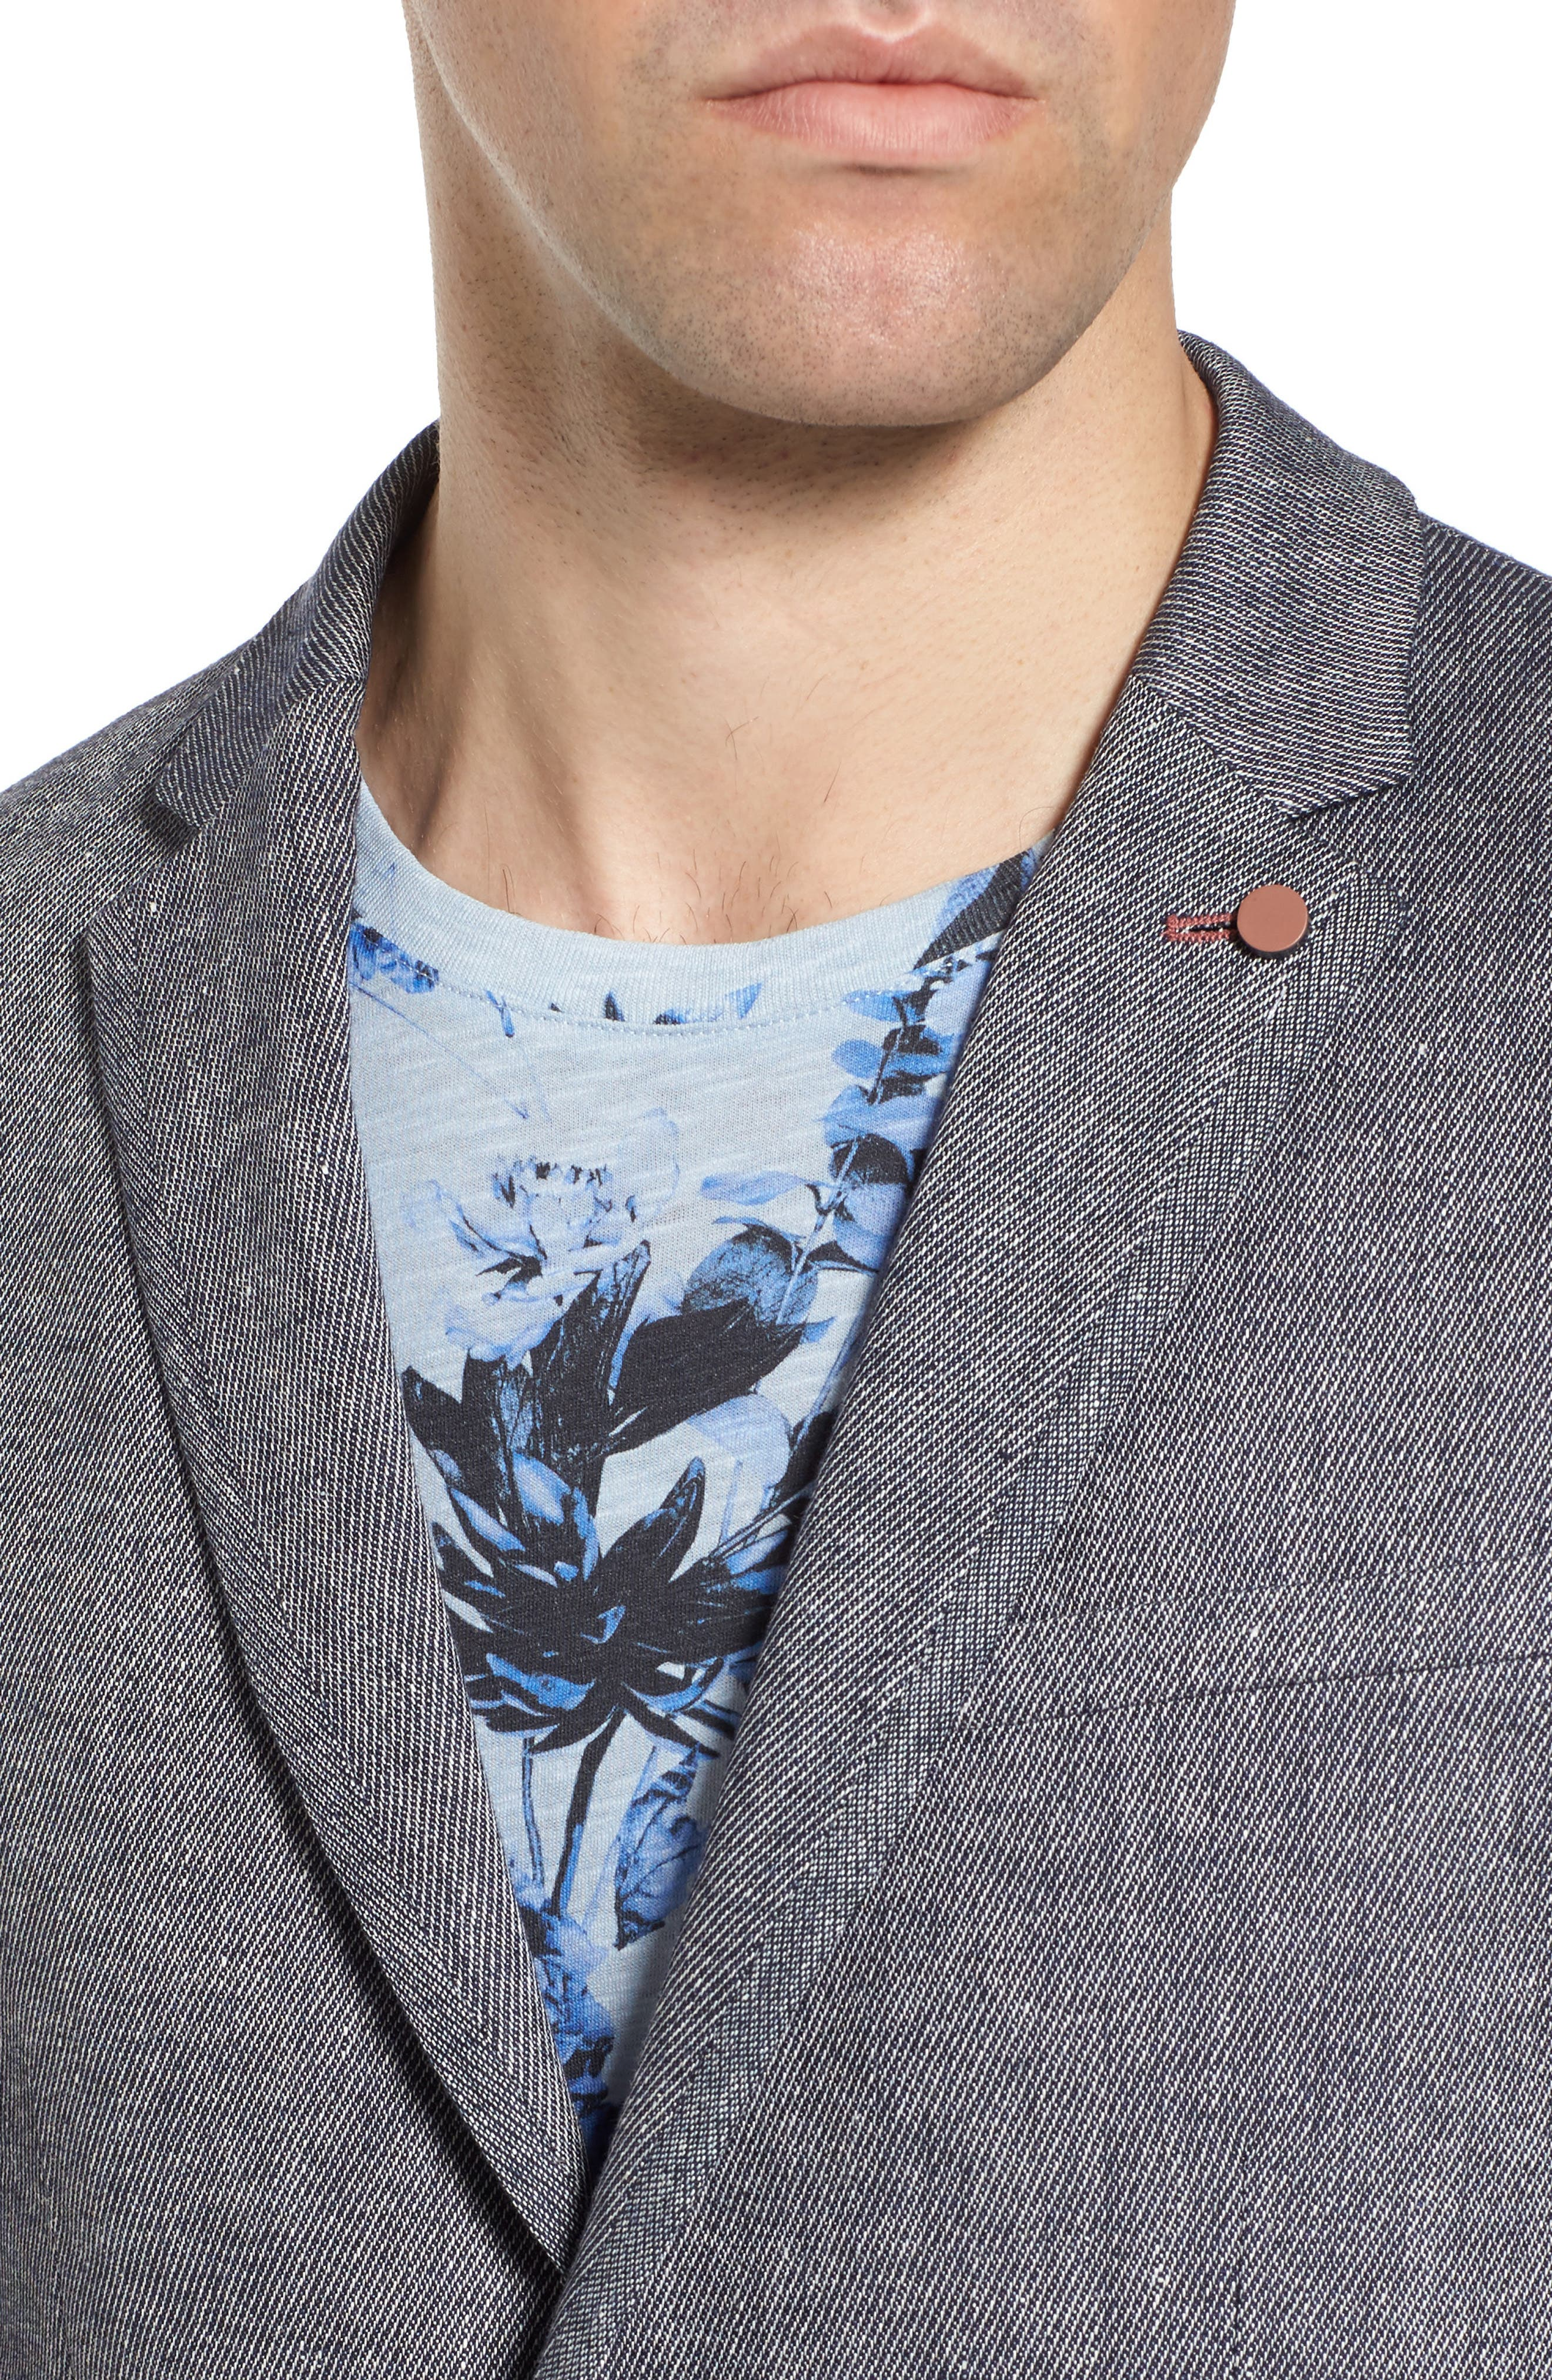 Hines Linen Blend Blazer,                             Alternate thumbnail 4, color,                             Blue